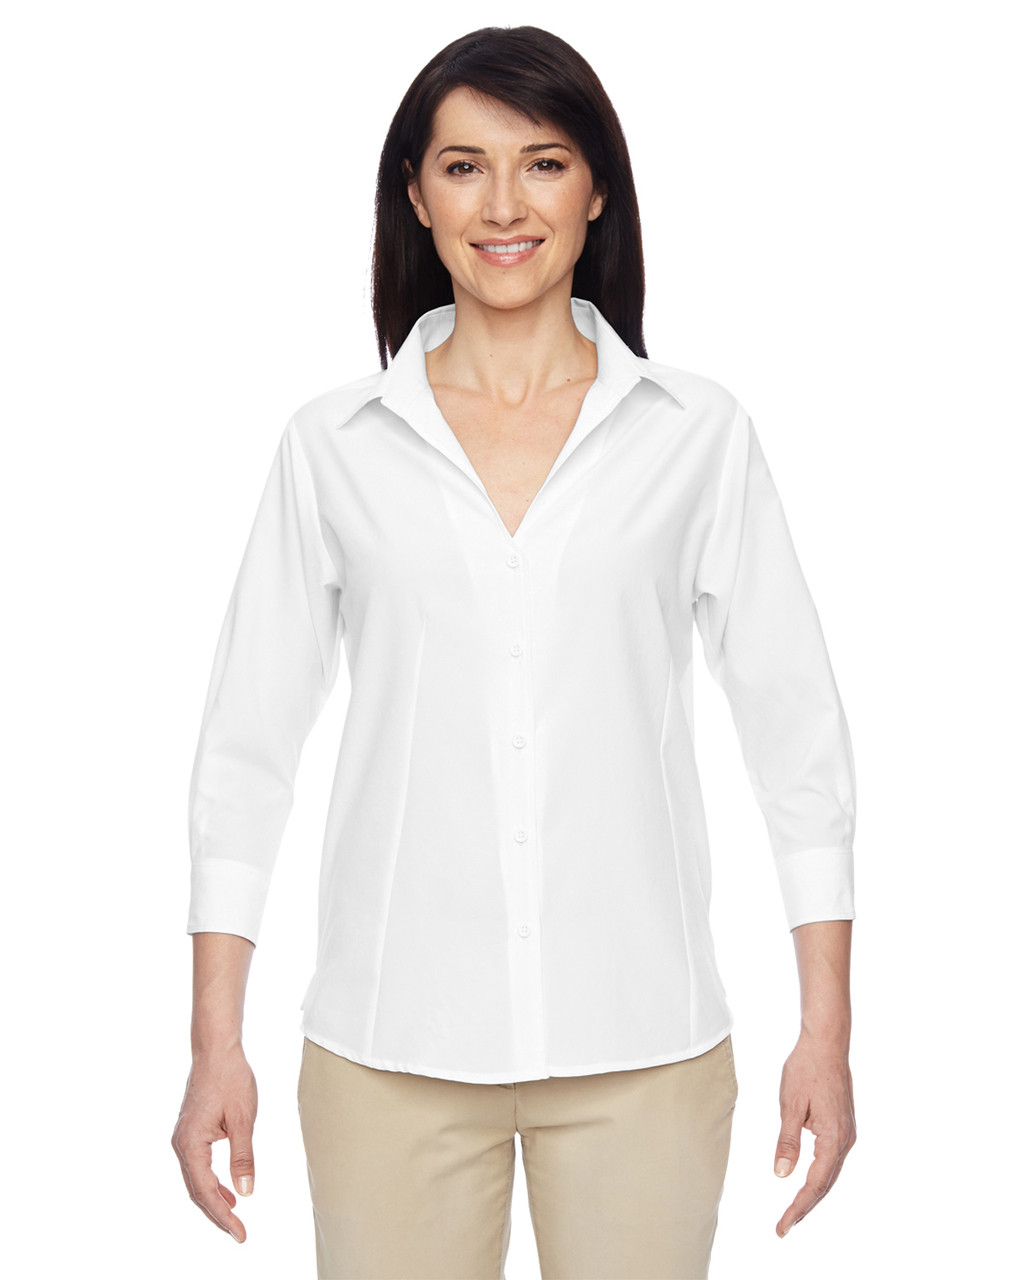 White - M610W Harriton Ladies' Paradise Three-Quarter Sleeve Performance Shirt | BlankClothing.ca